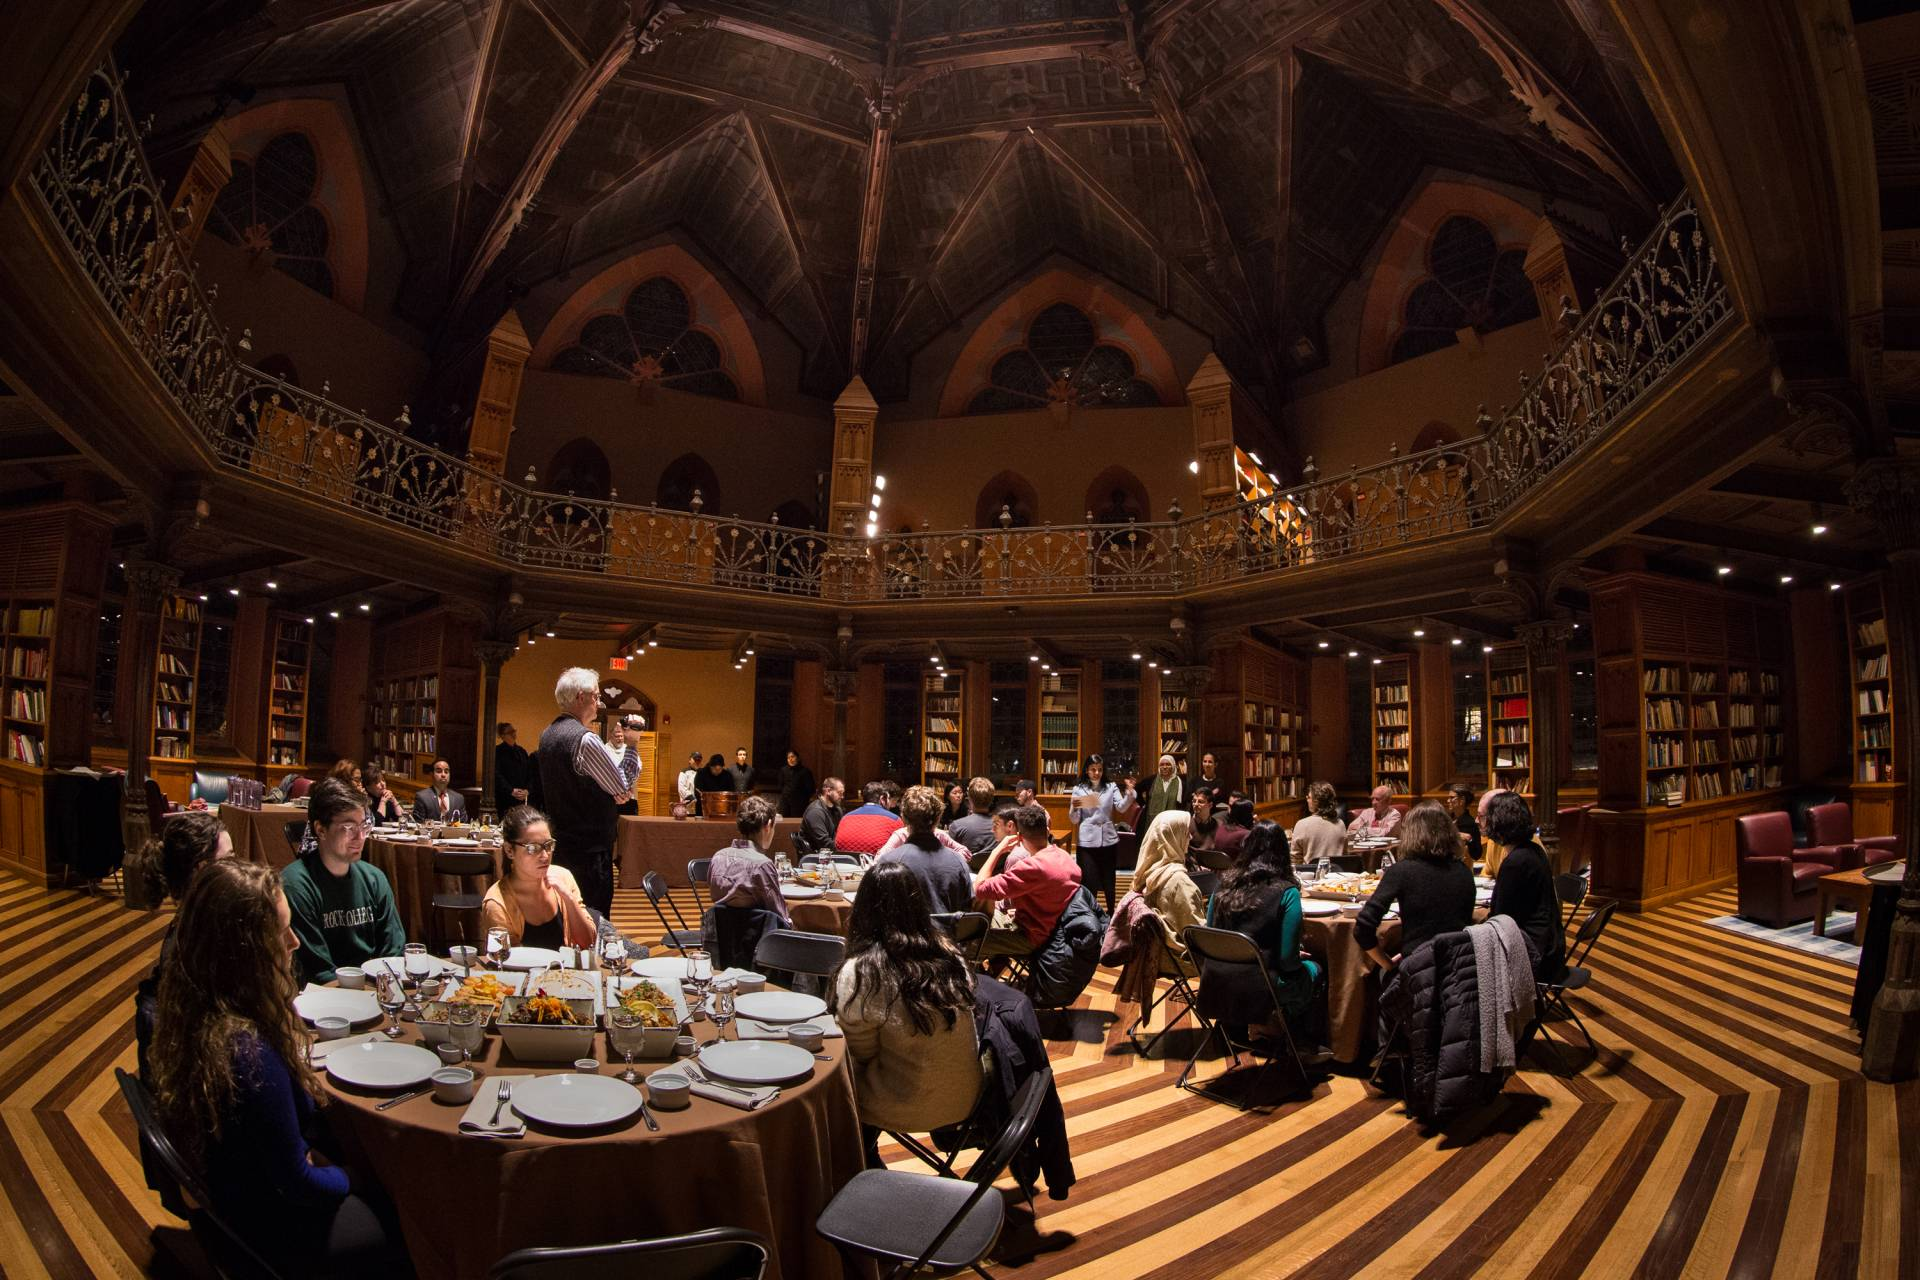 Princeton students, faculty and staff enjoy a traditional dinner in Chancellor Green Rotunda